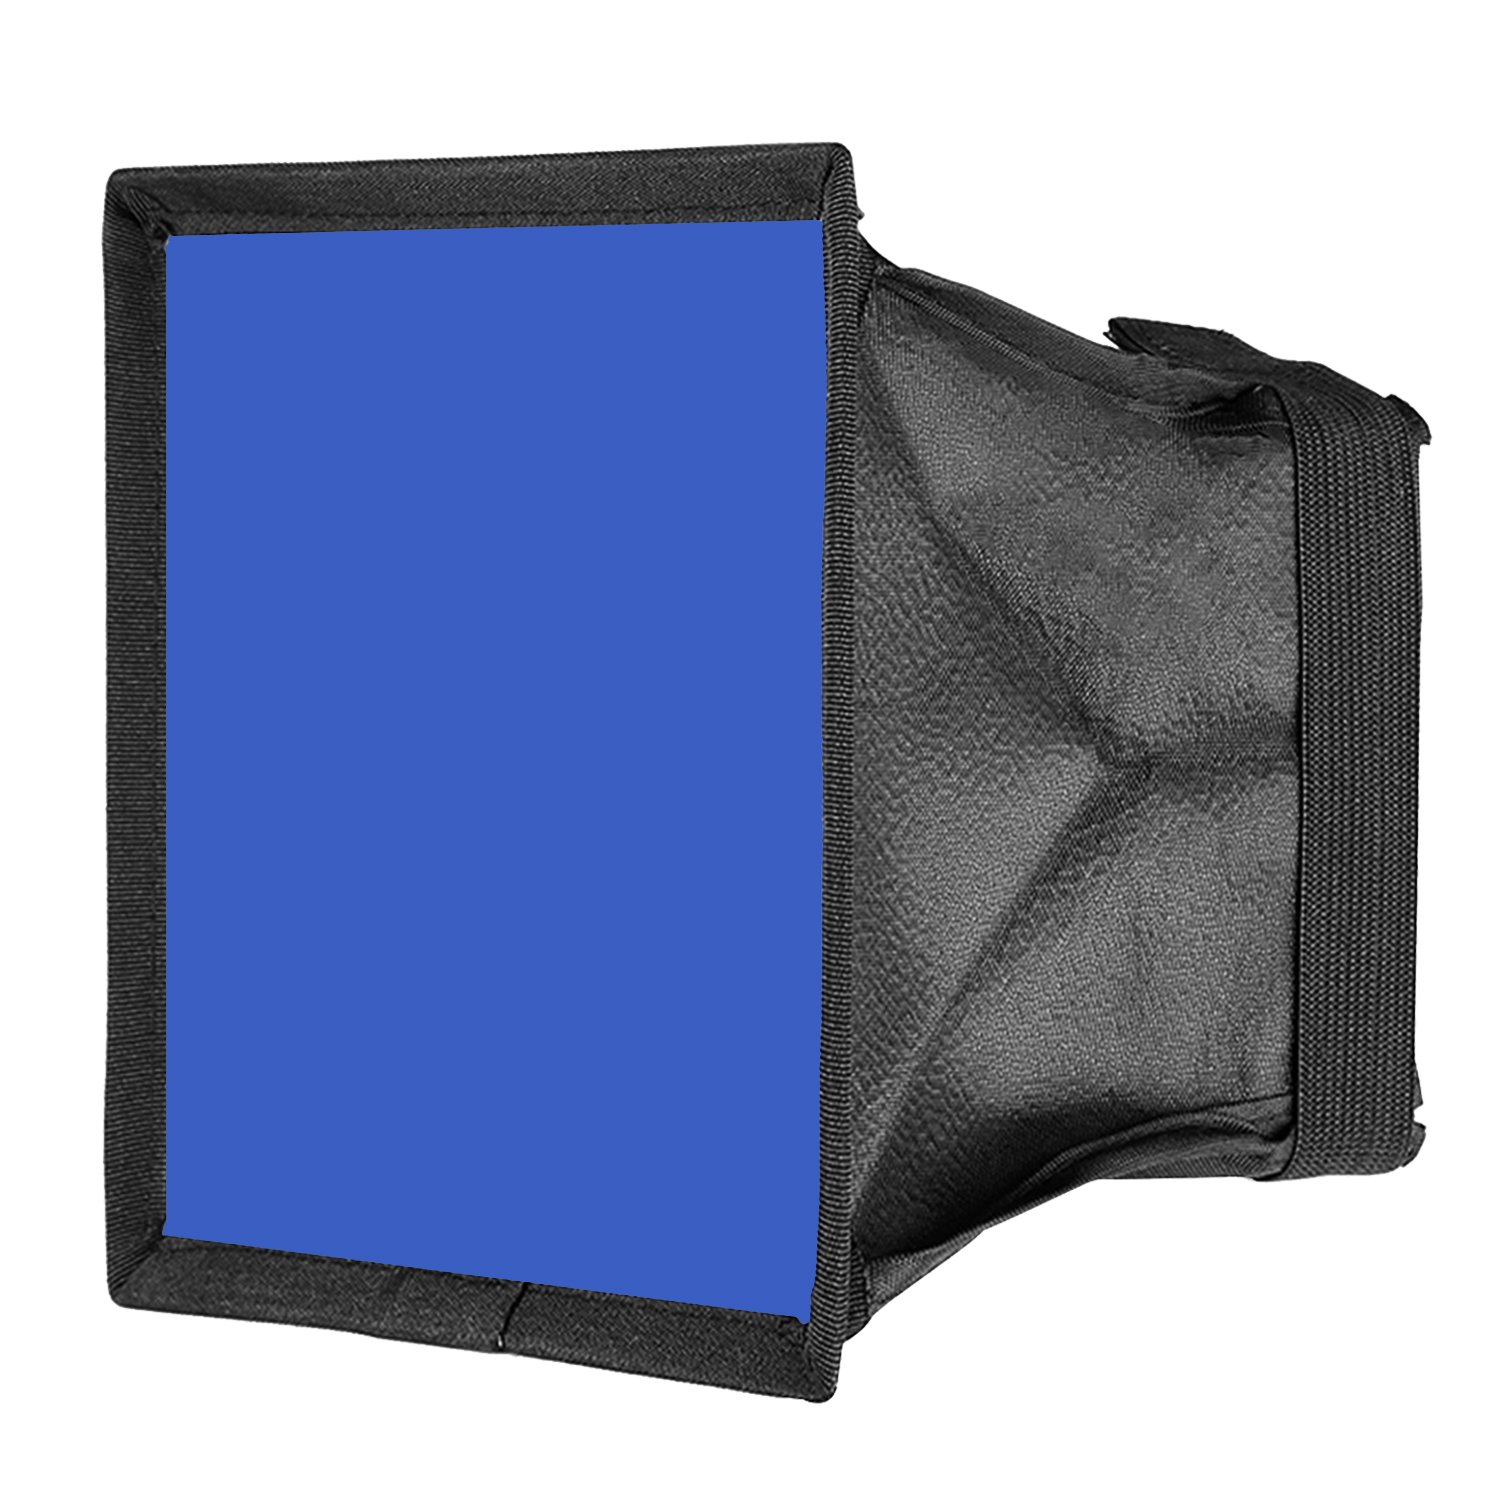 Neewer 5.9x6.7 inches/15x17 Centimeters Camera Collapsible Diffuser Mini Softbox for CN-160, CN-126 and CN-216 LED Light (Blue) by Neewer